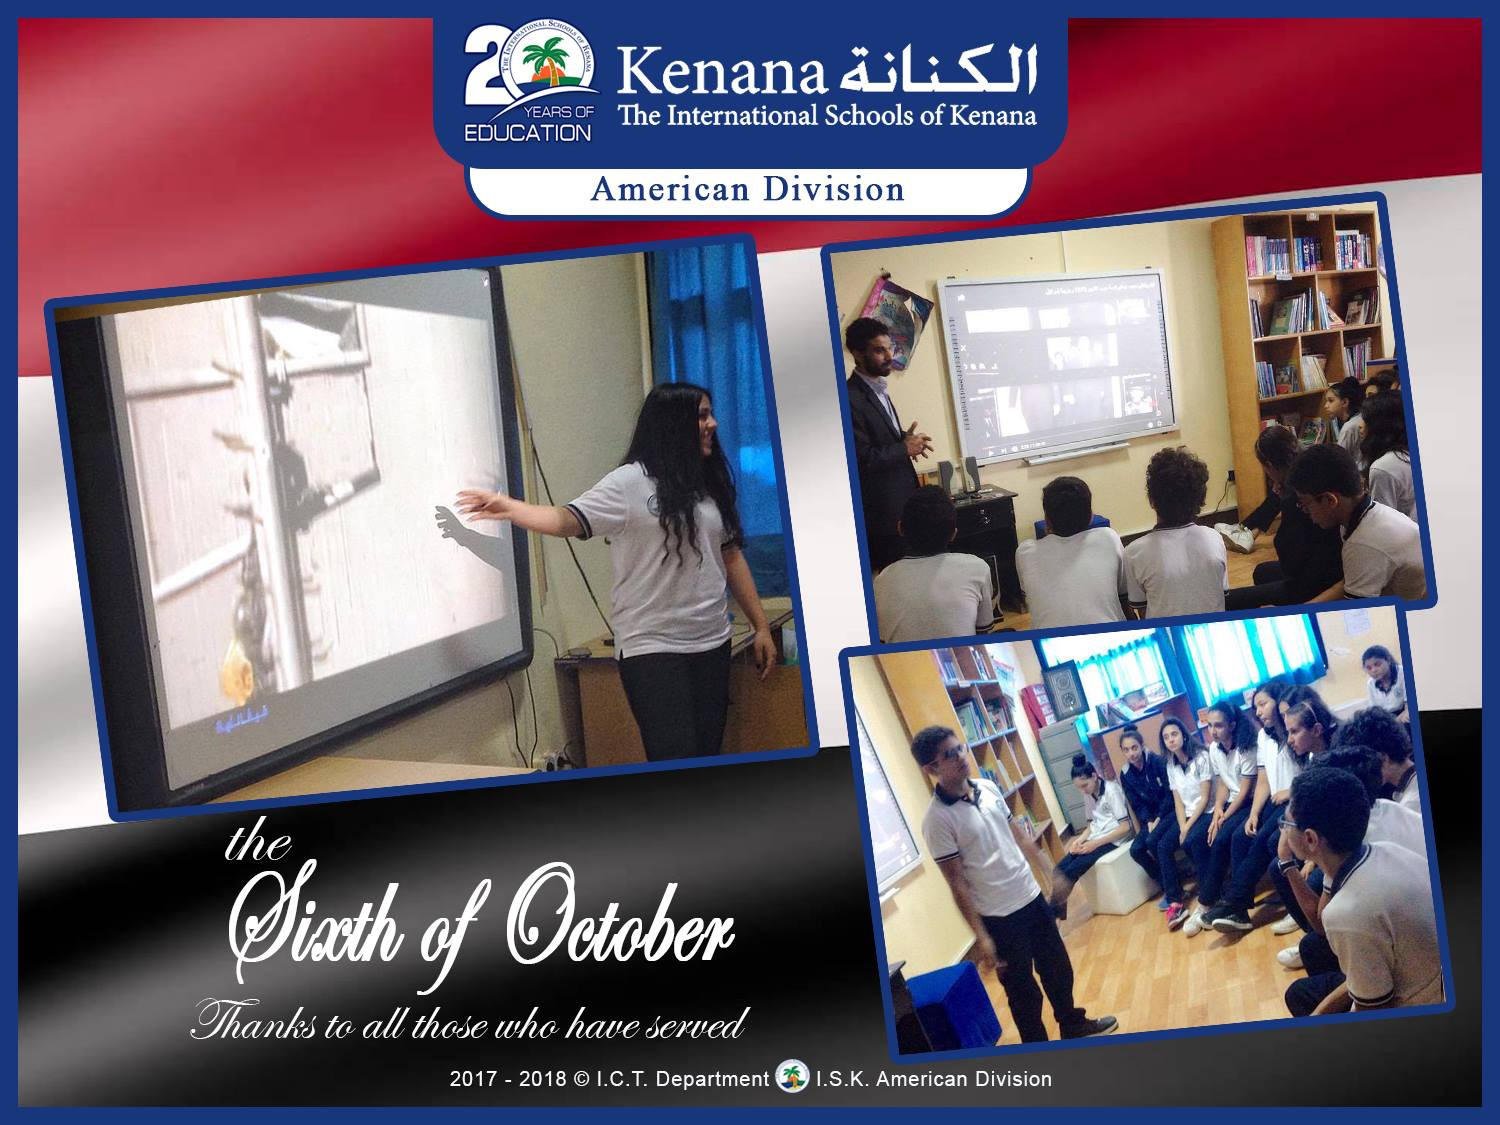 International Schools of Kenana | American Division - The Sixth of October